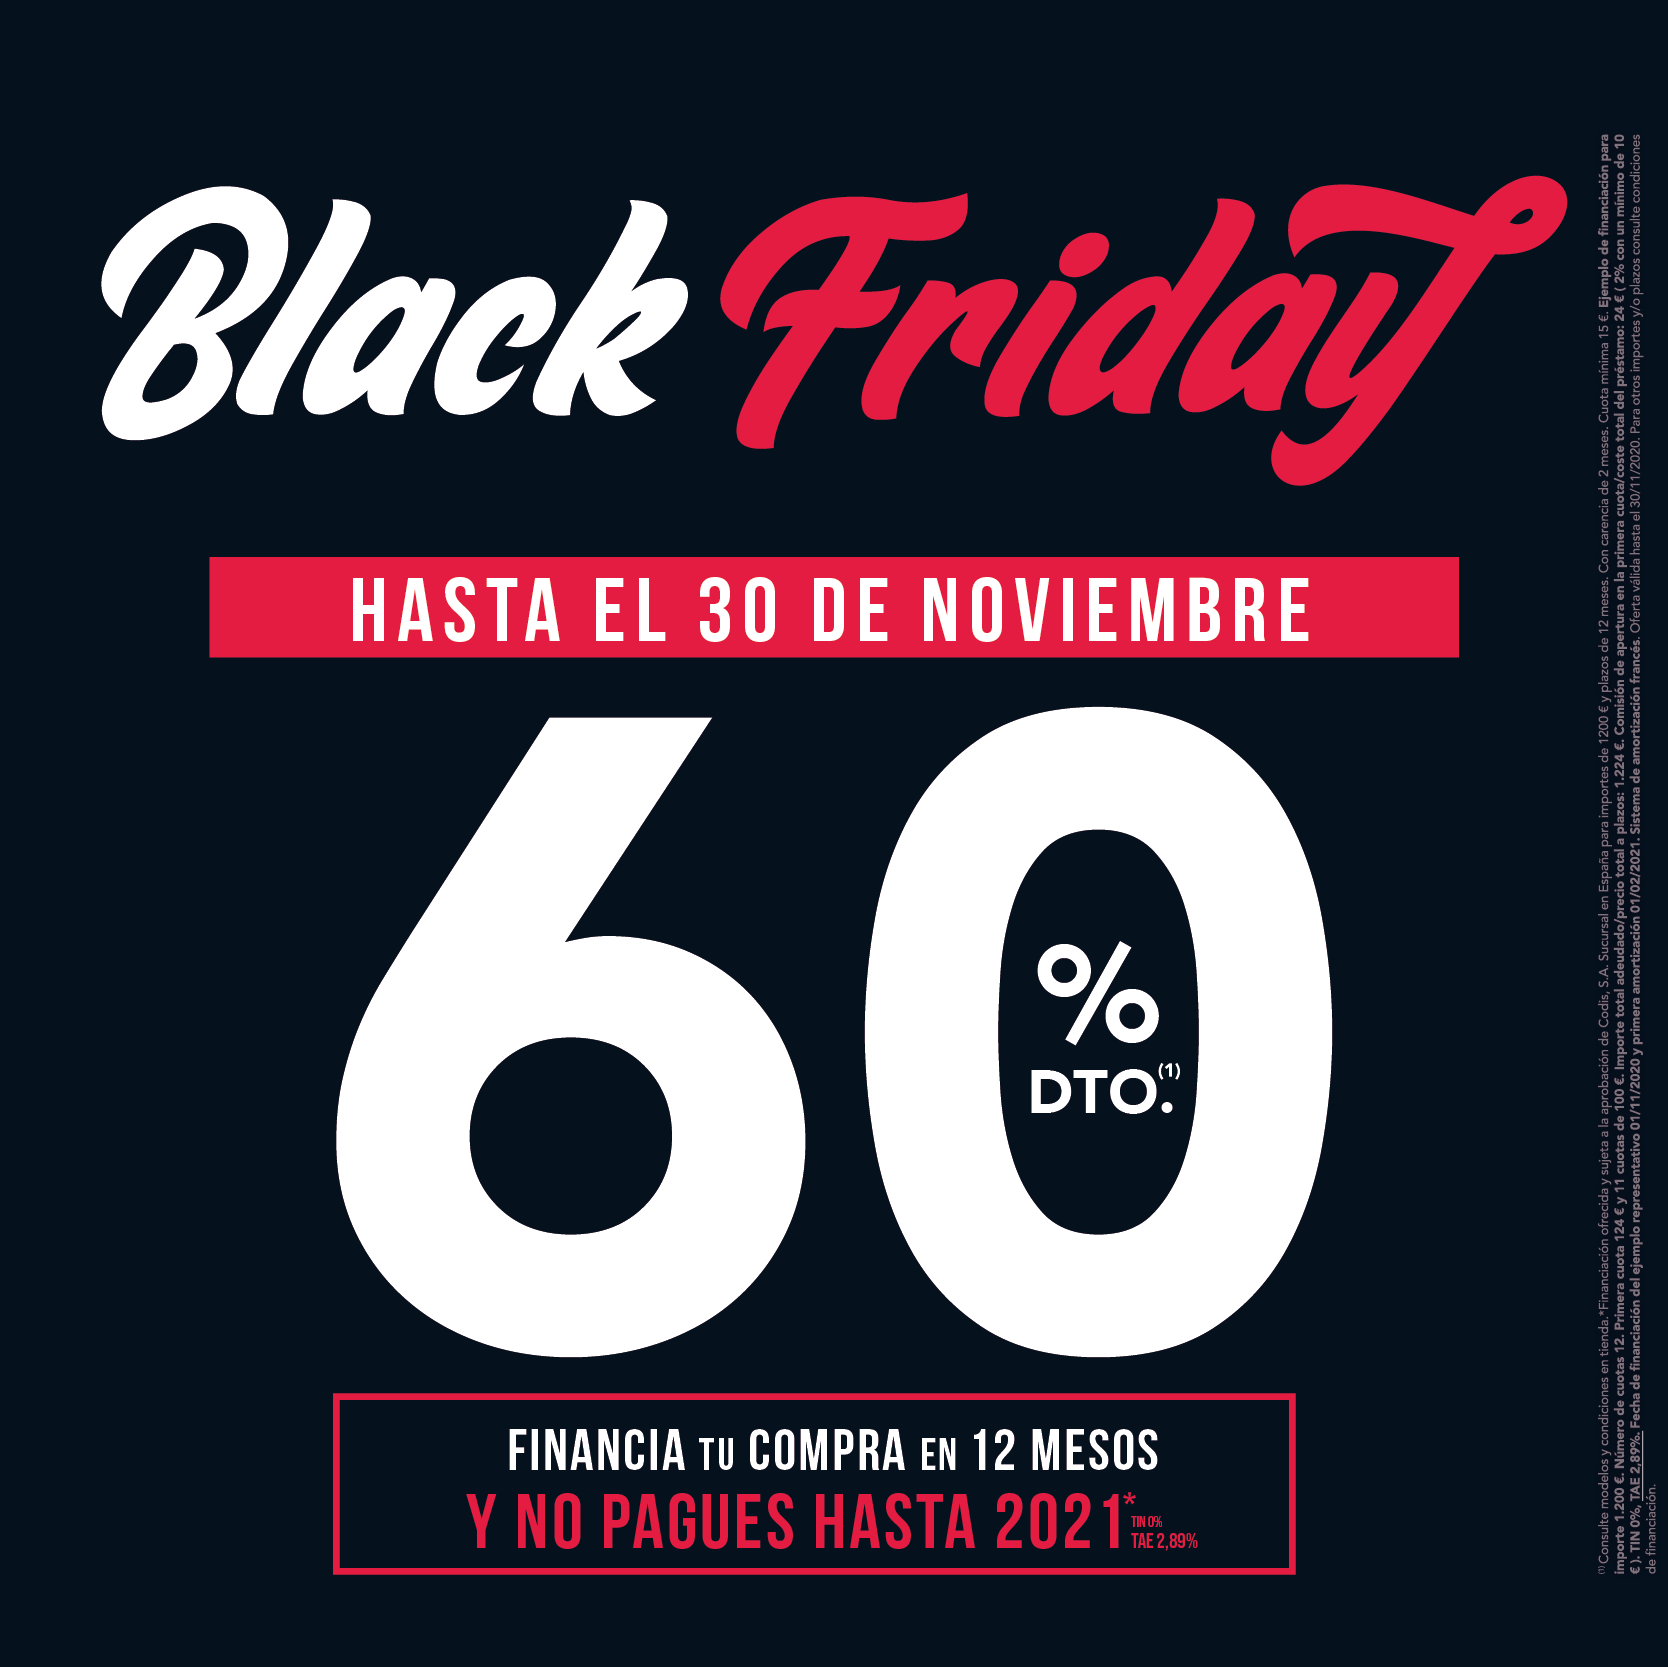 Black Friday Horizzontal 2020